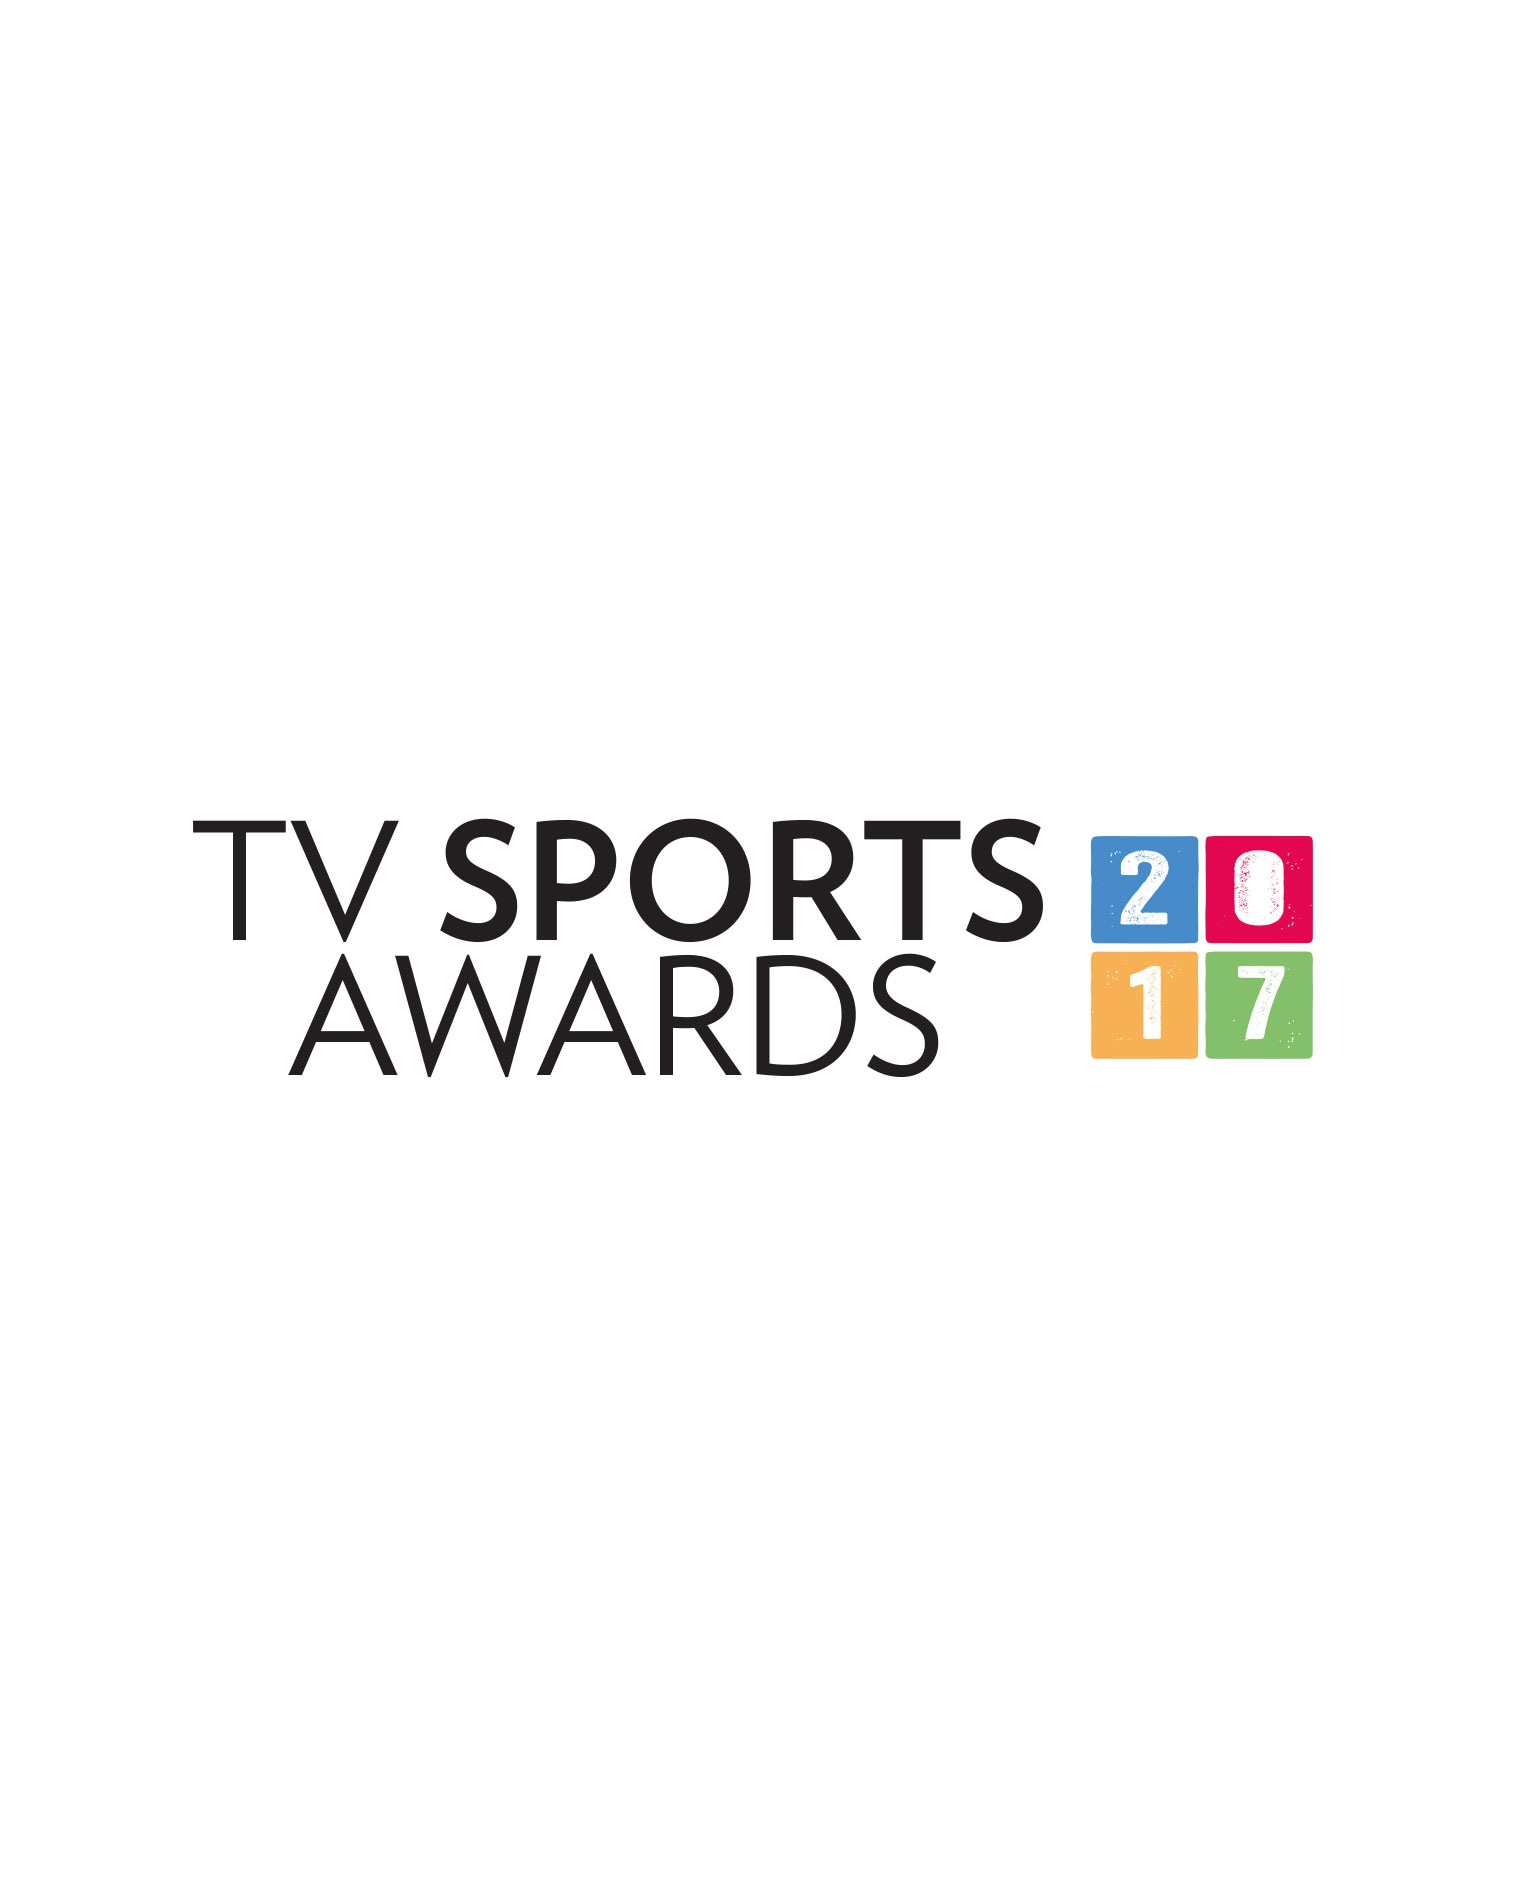 Tv Sports Awards da favola con il Golden Boy 2017